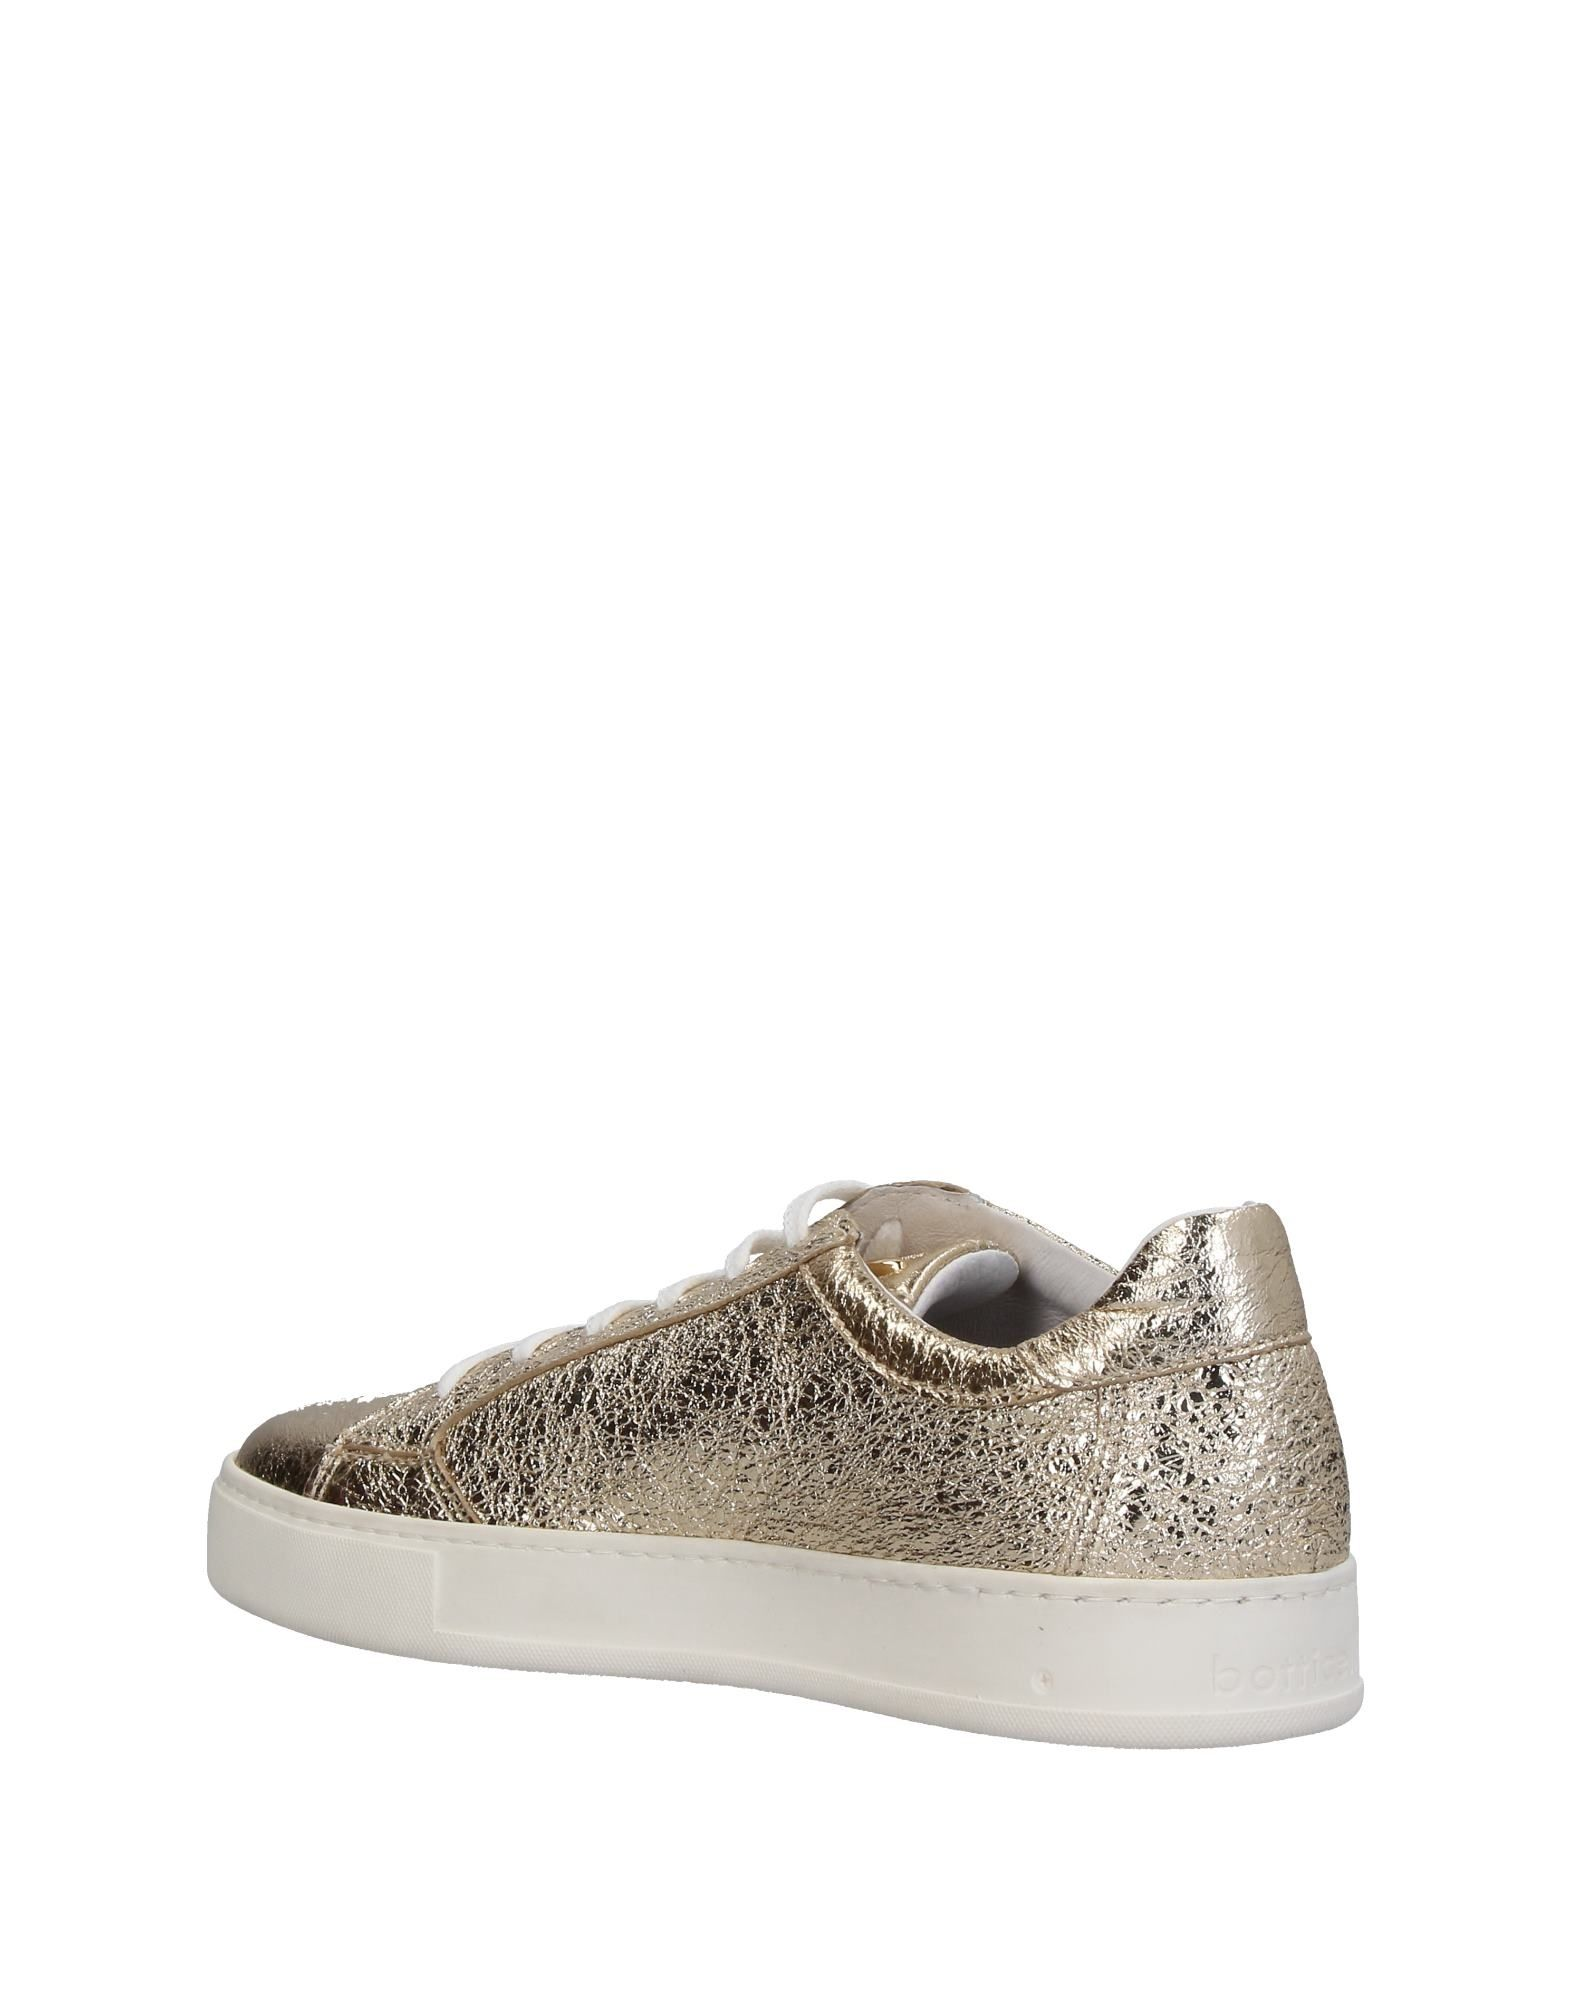 Sneakers Botticelli Femme - Sneakers Botticelli sur